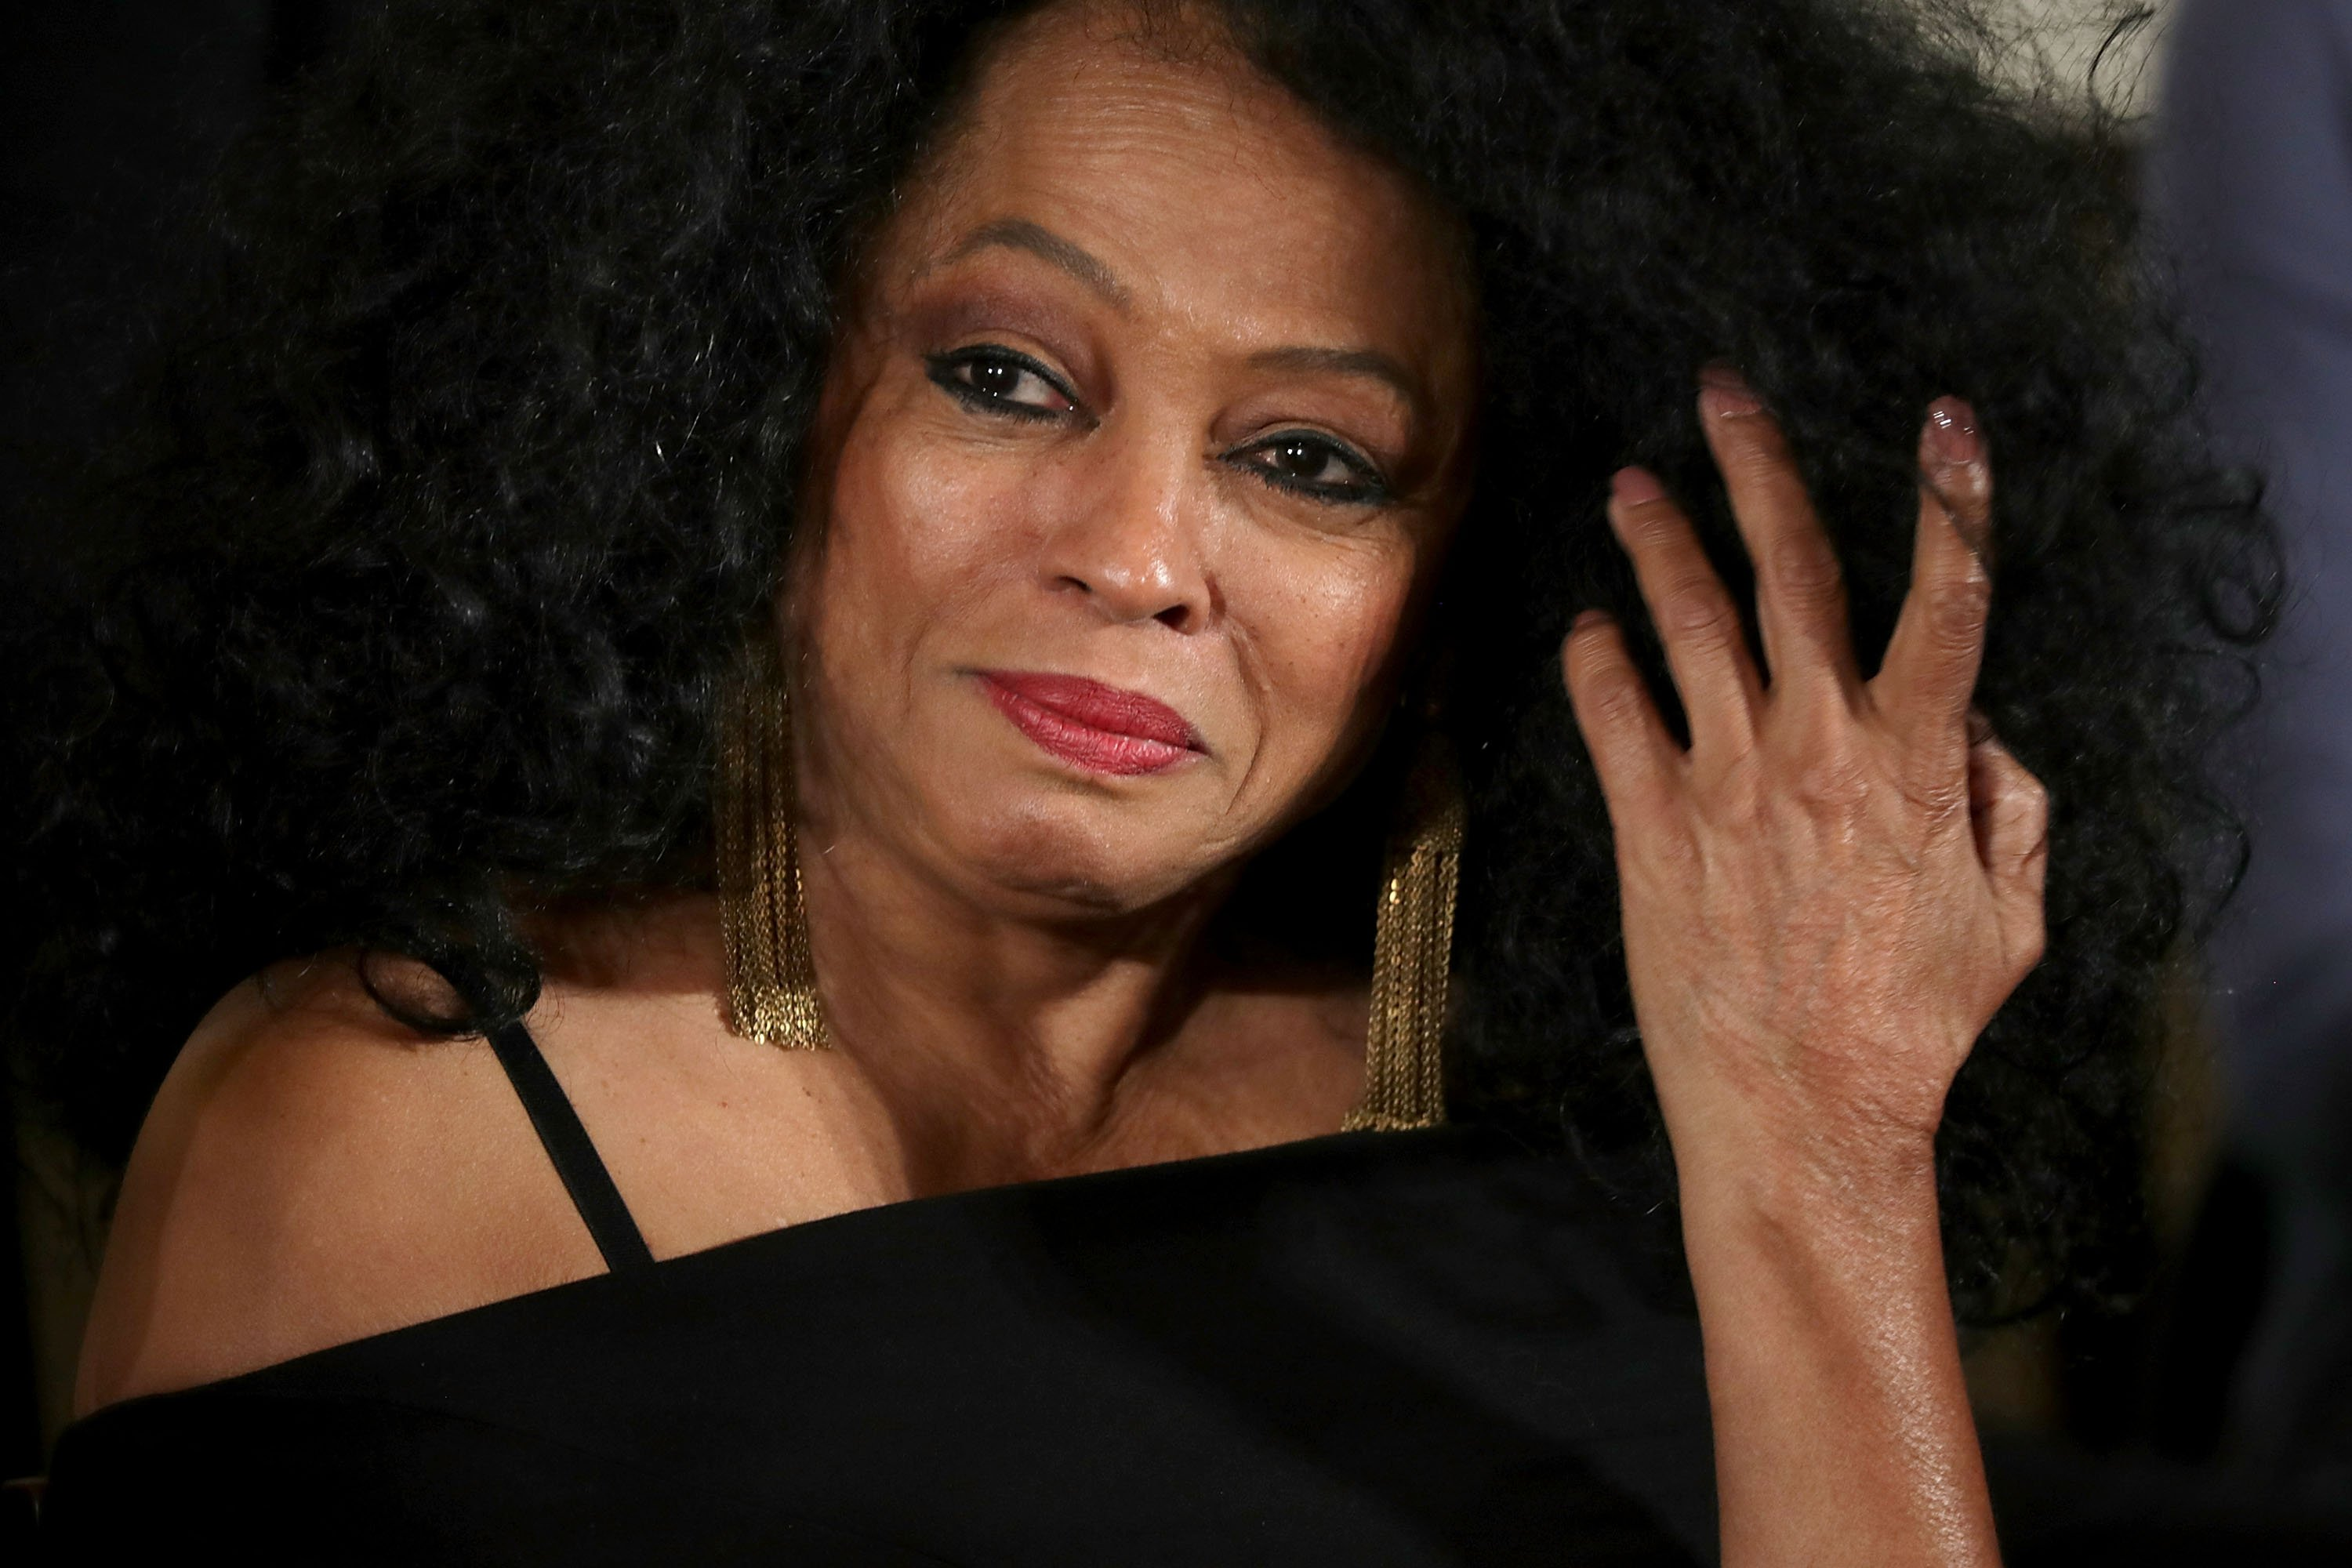 Diana Ross during a ceremony at the White House, November 22, 2016 in Washington, DC.   Photo: Getty Images